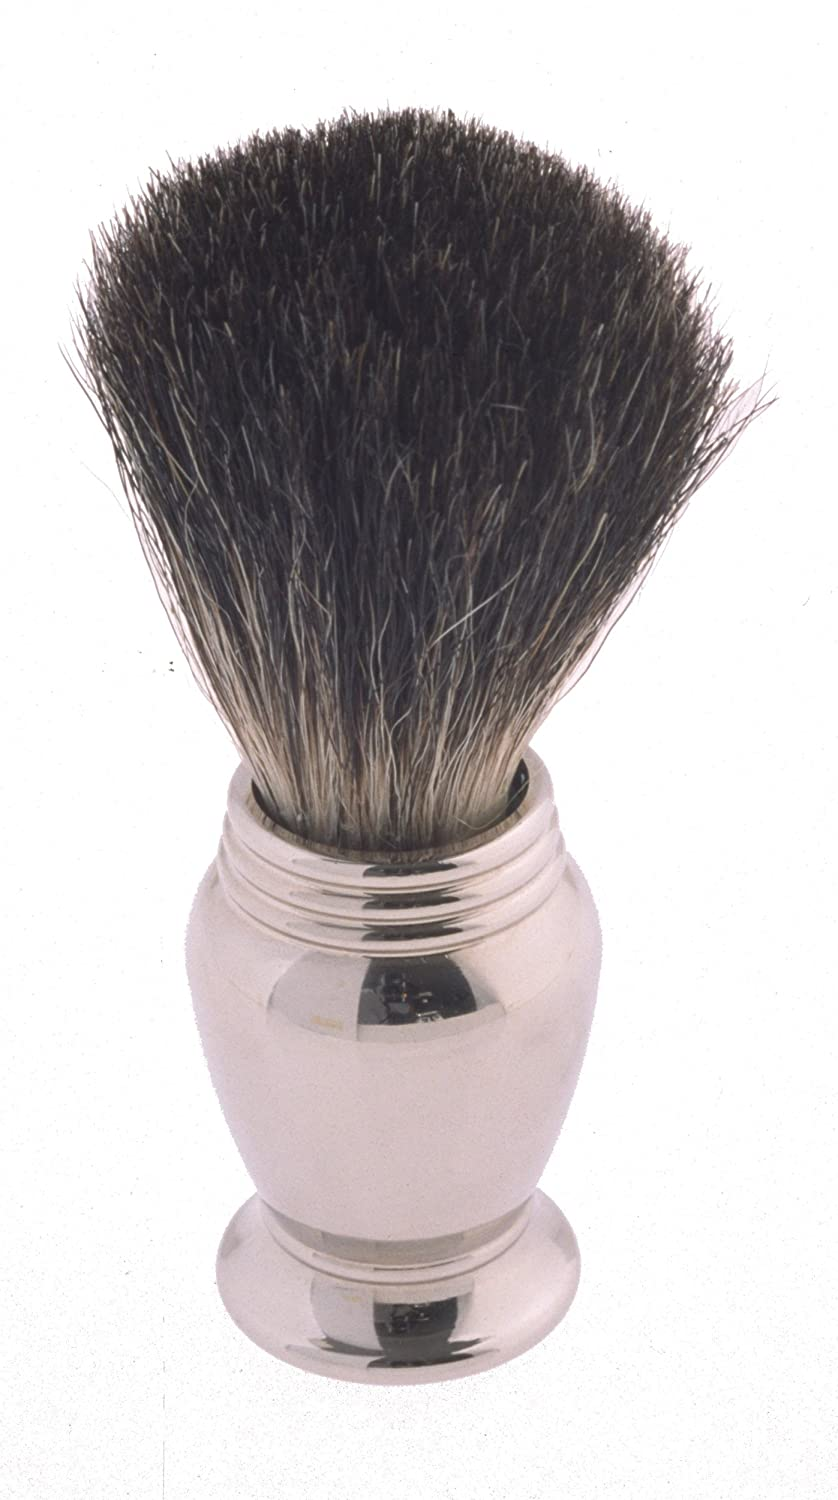 Col. Conk Products Model 247 Pure Badger Shaving Brush with Chrome Handle